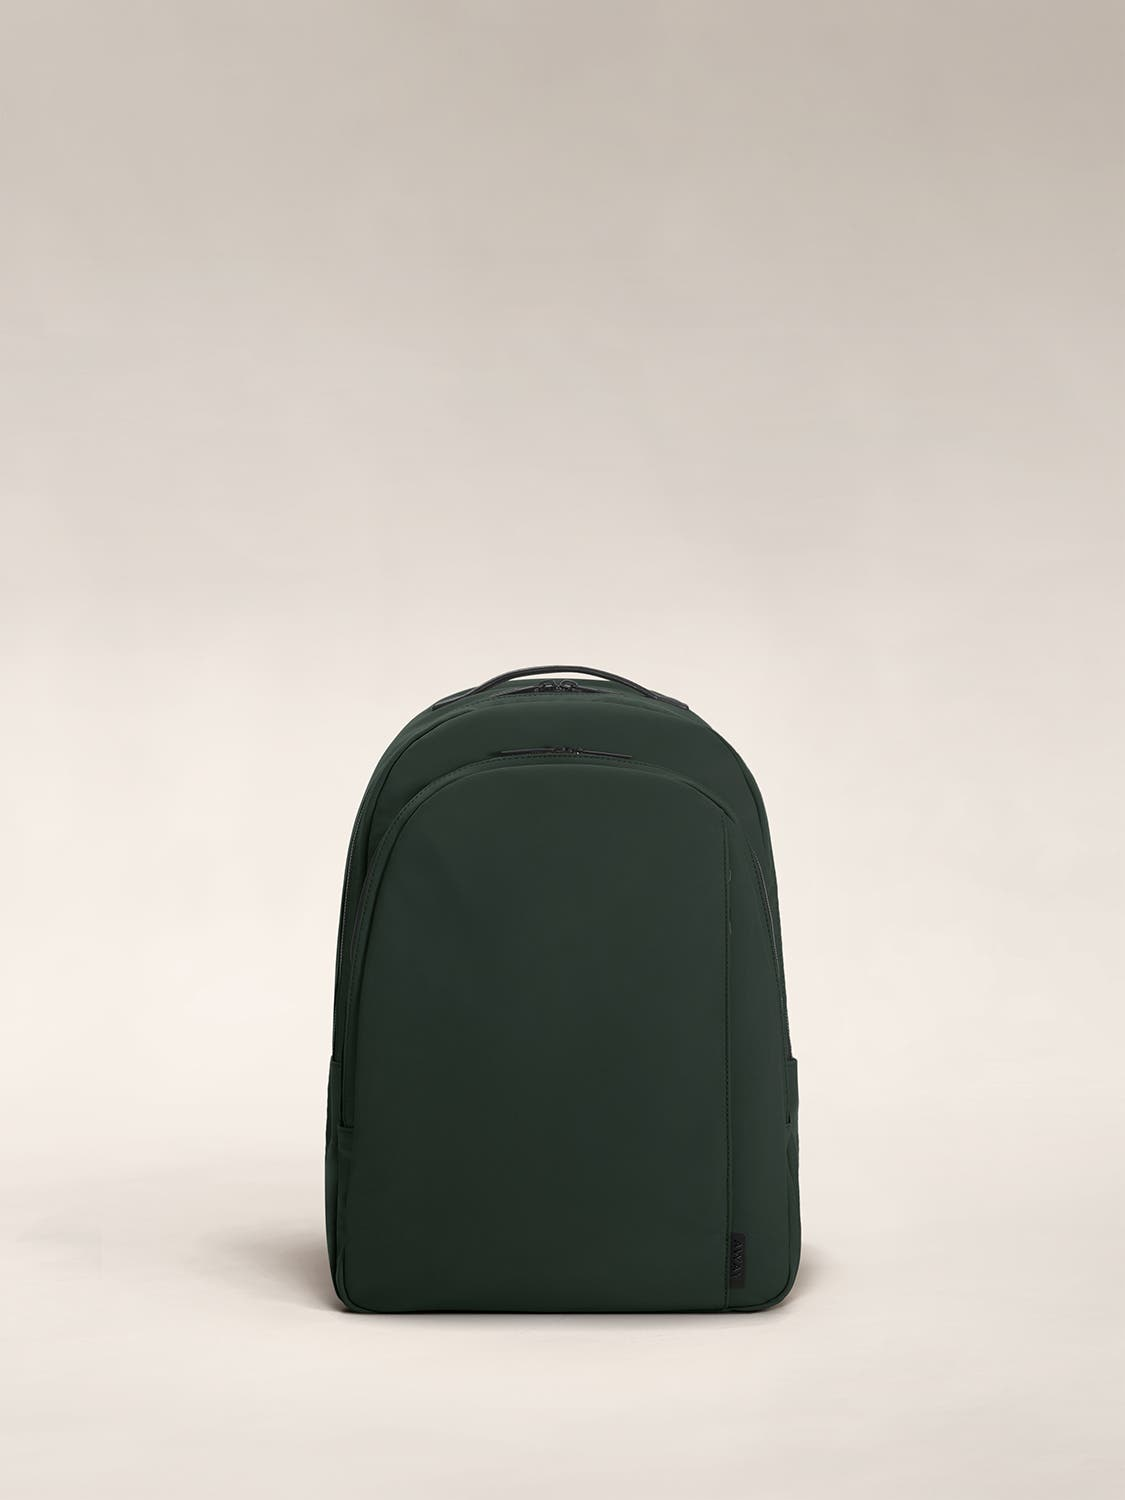 Green color backpack with one large zip compartment and one small one.